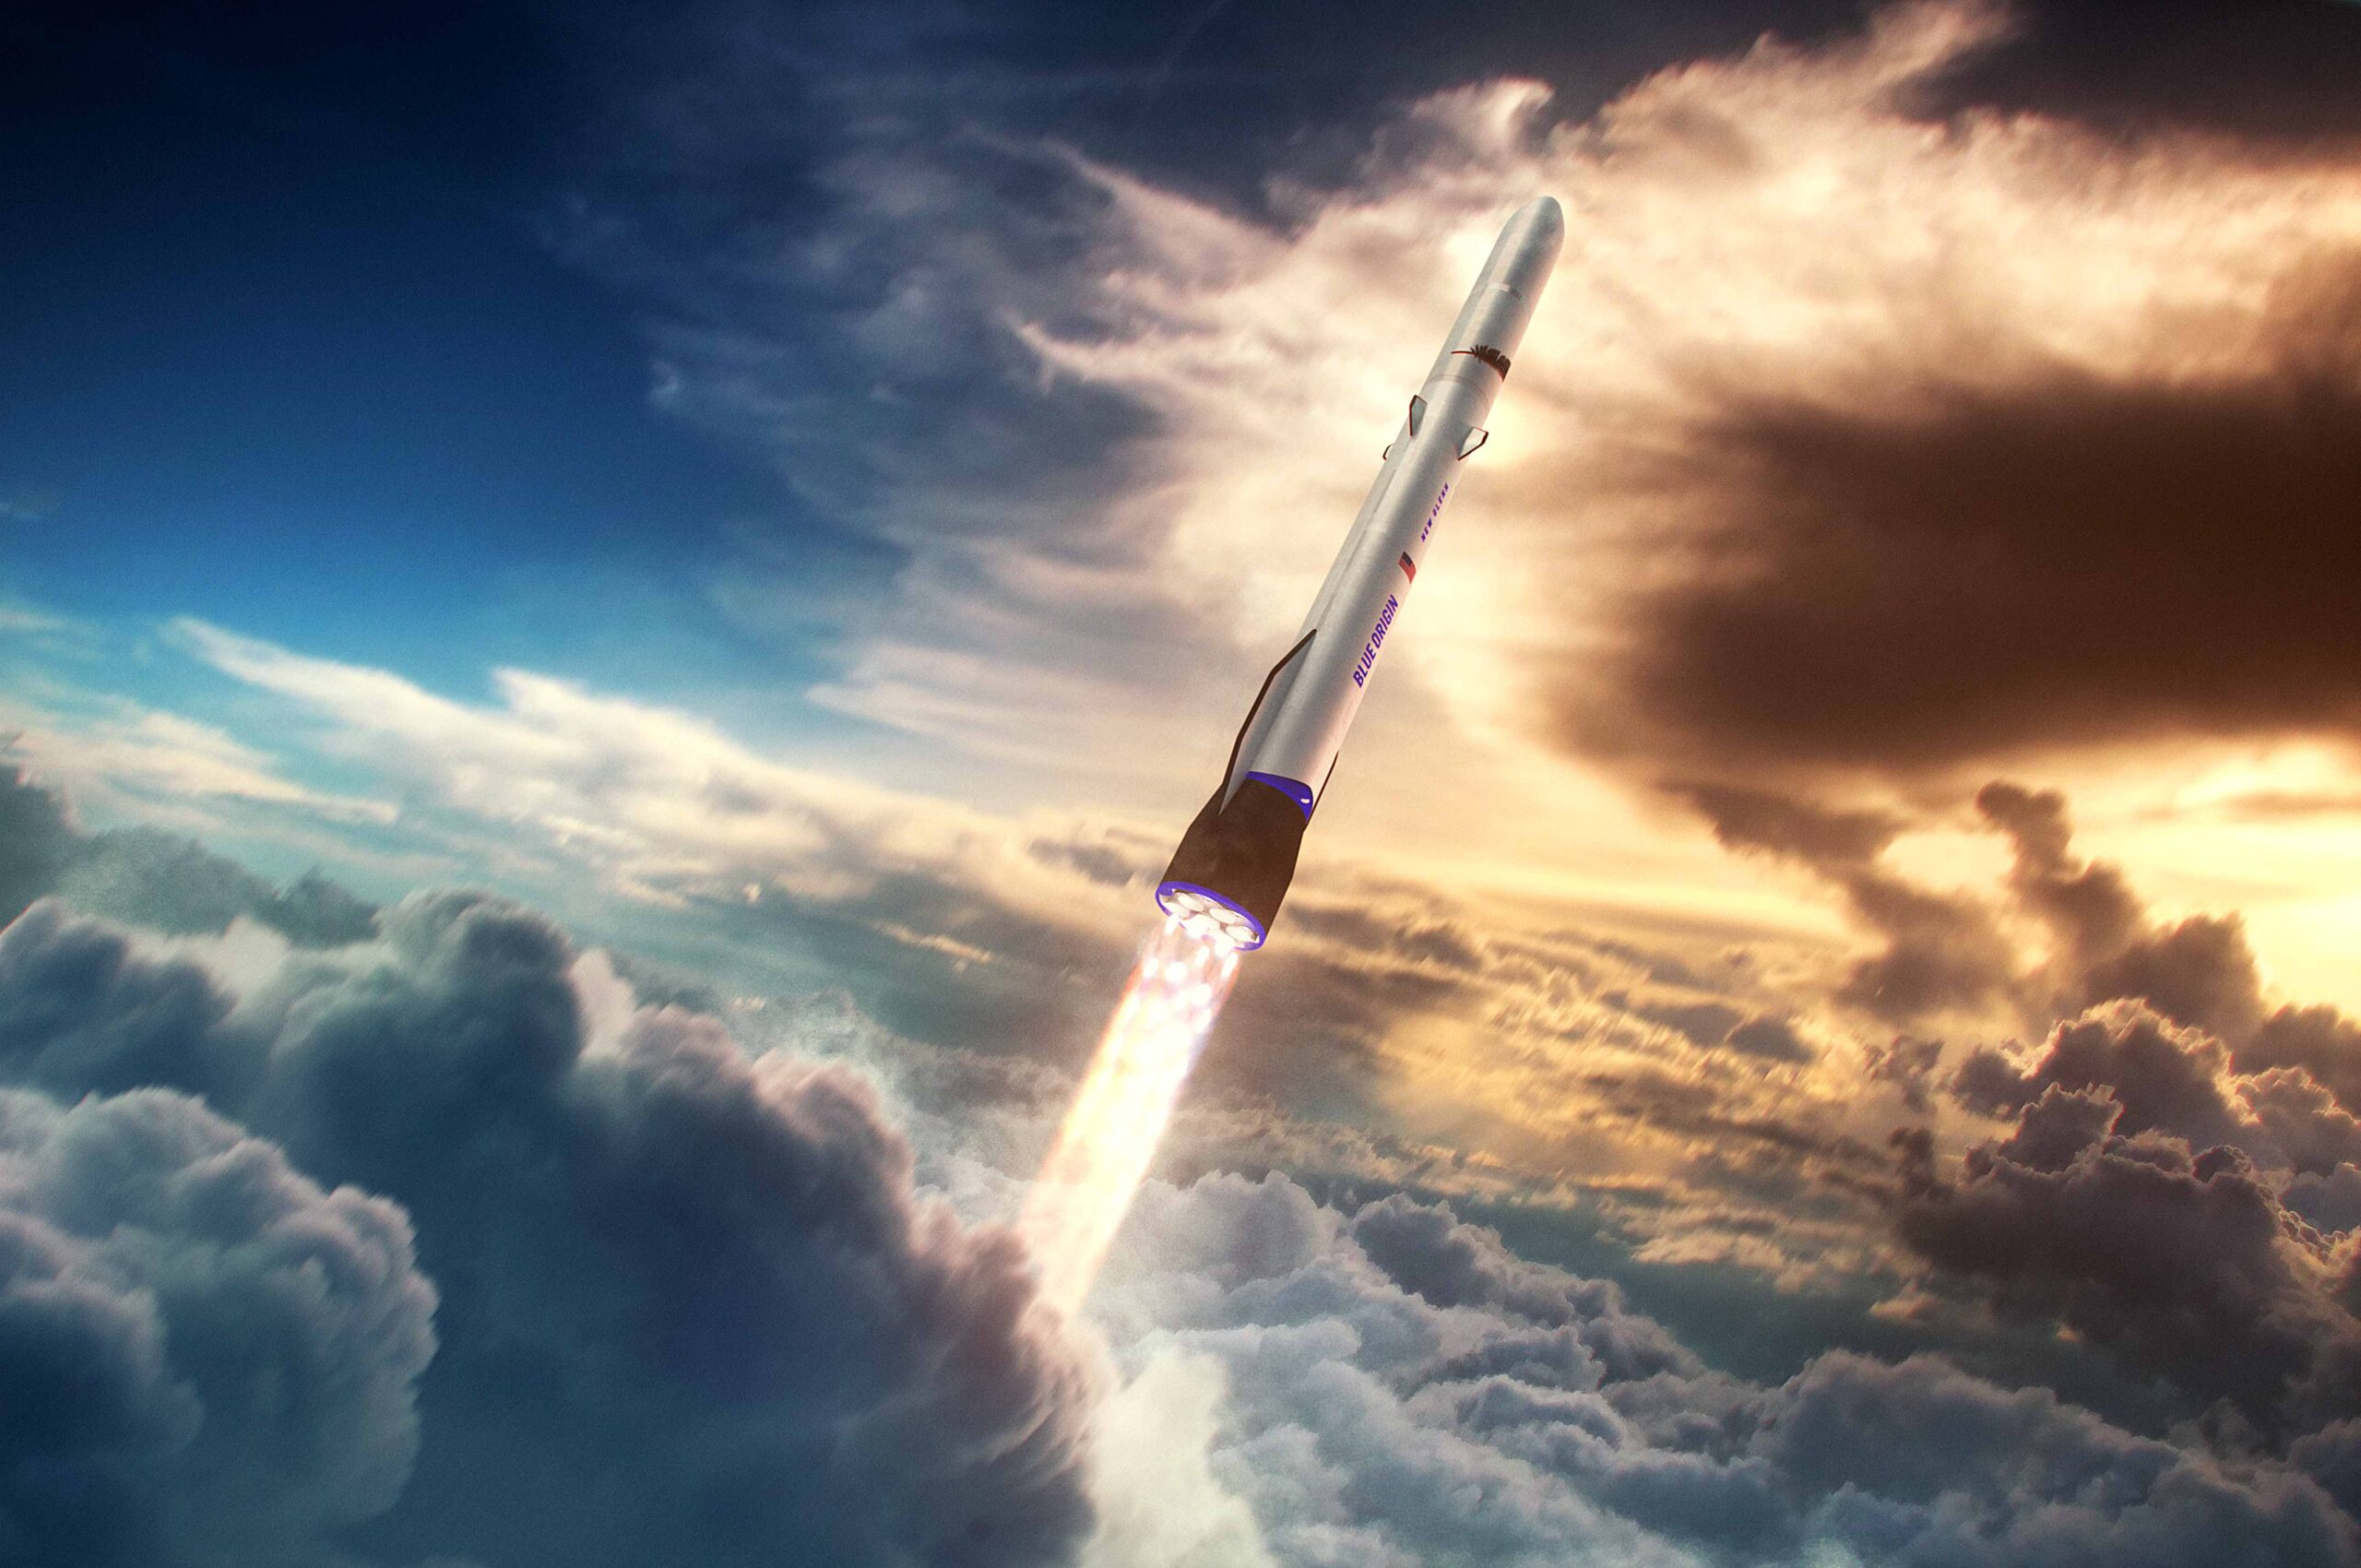 Jeff Bezos' Blue Origin Signs a New Contract with NASA to use its New Glenn Rocket for Upcoming Missions